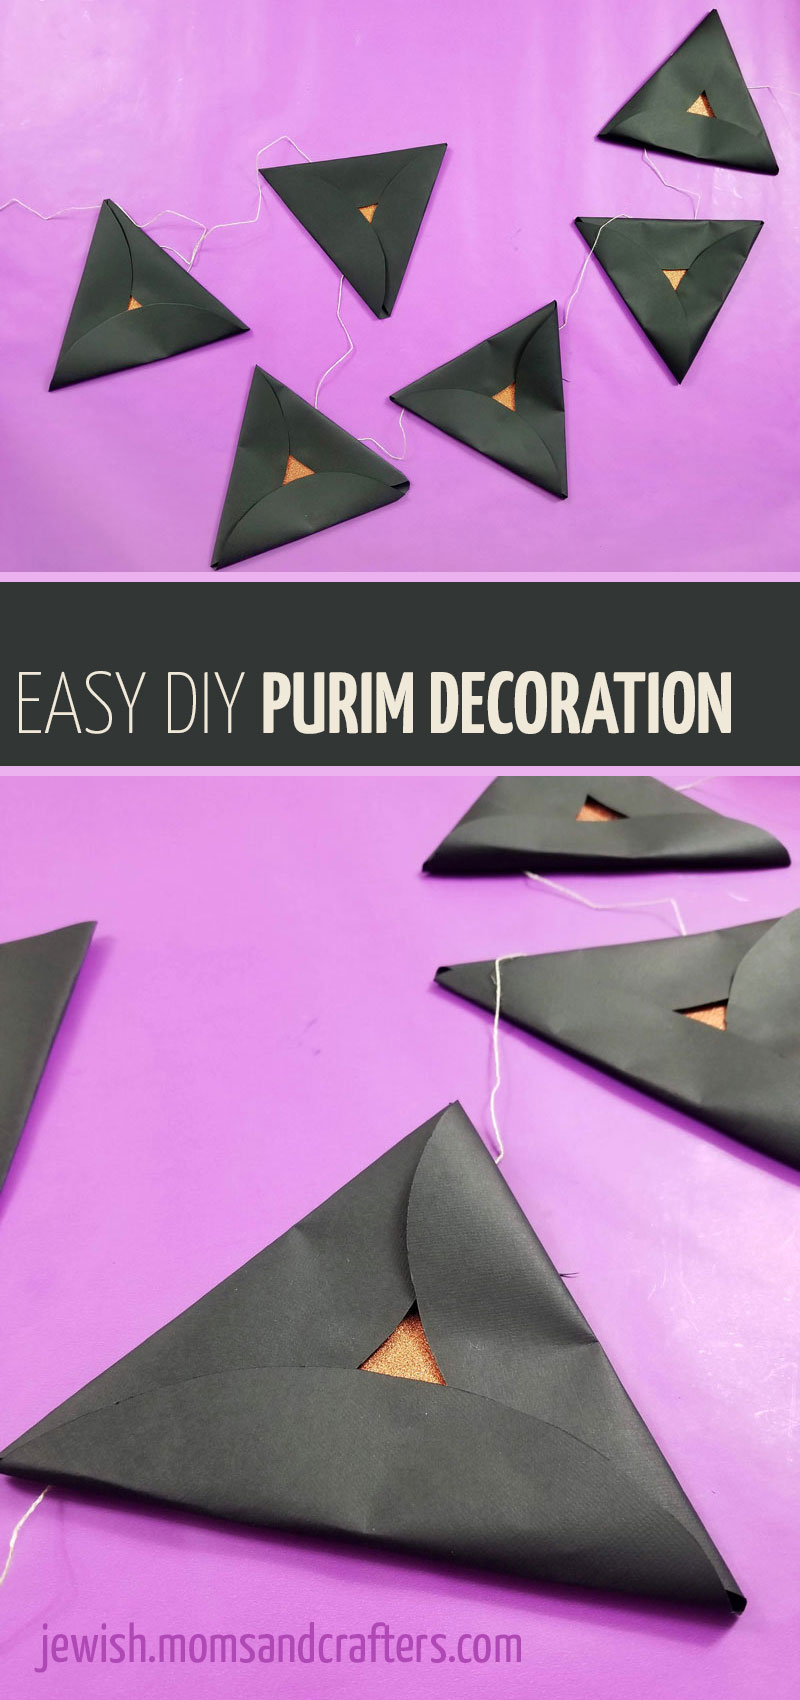 Click for an easy tutorial to make folded paper hamantaschen and turn them into a garland style Purim decoration! This classy and easy DIY purim decorating idea is great for classrooms or Purim parties and can be made by any age group.